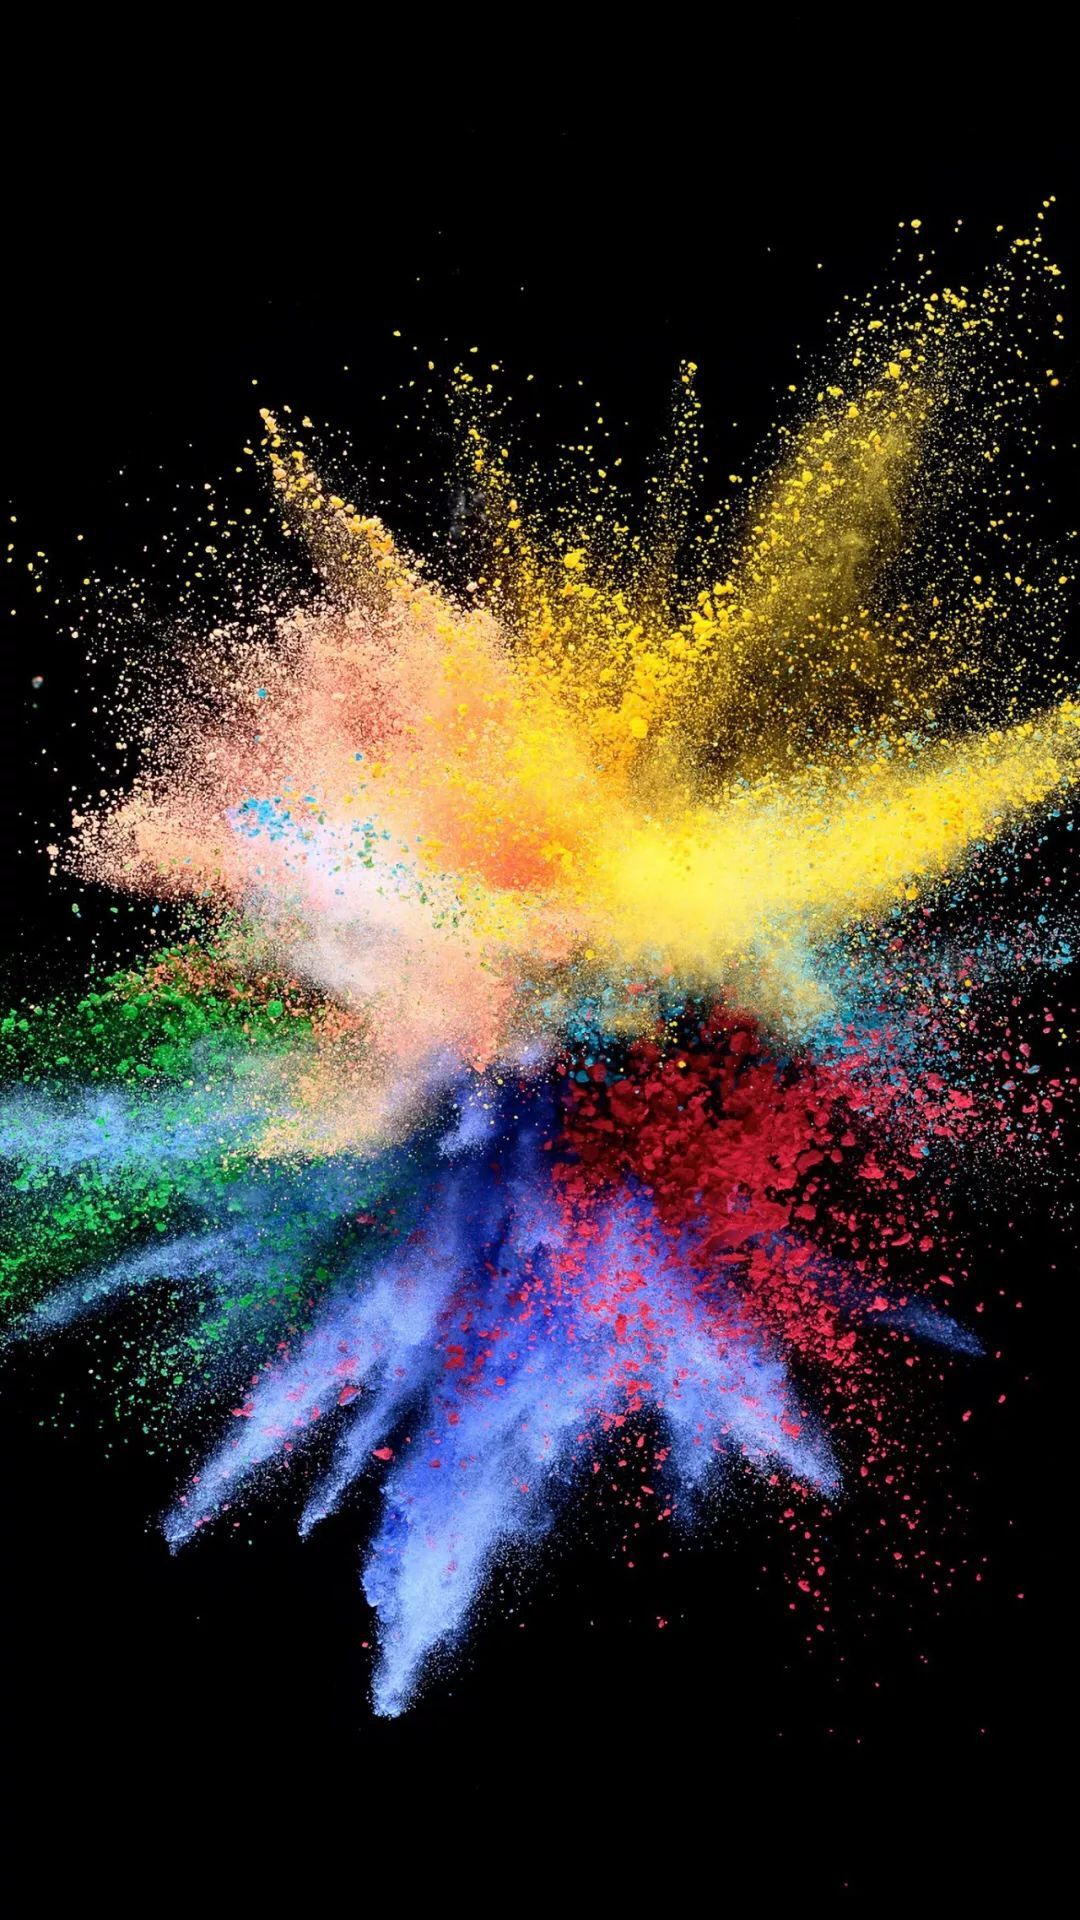 color burst, bright colors, explosion, imagination, https